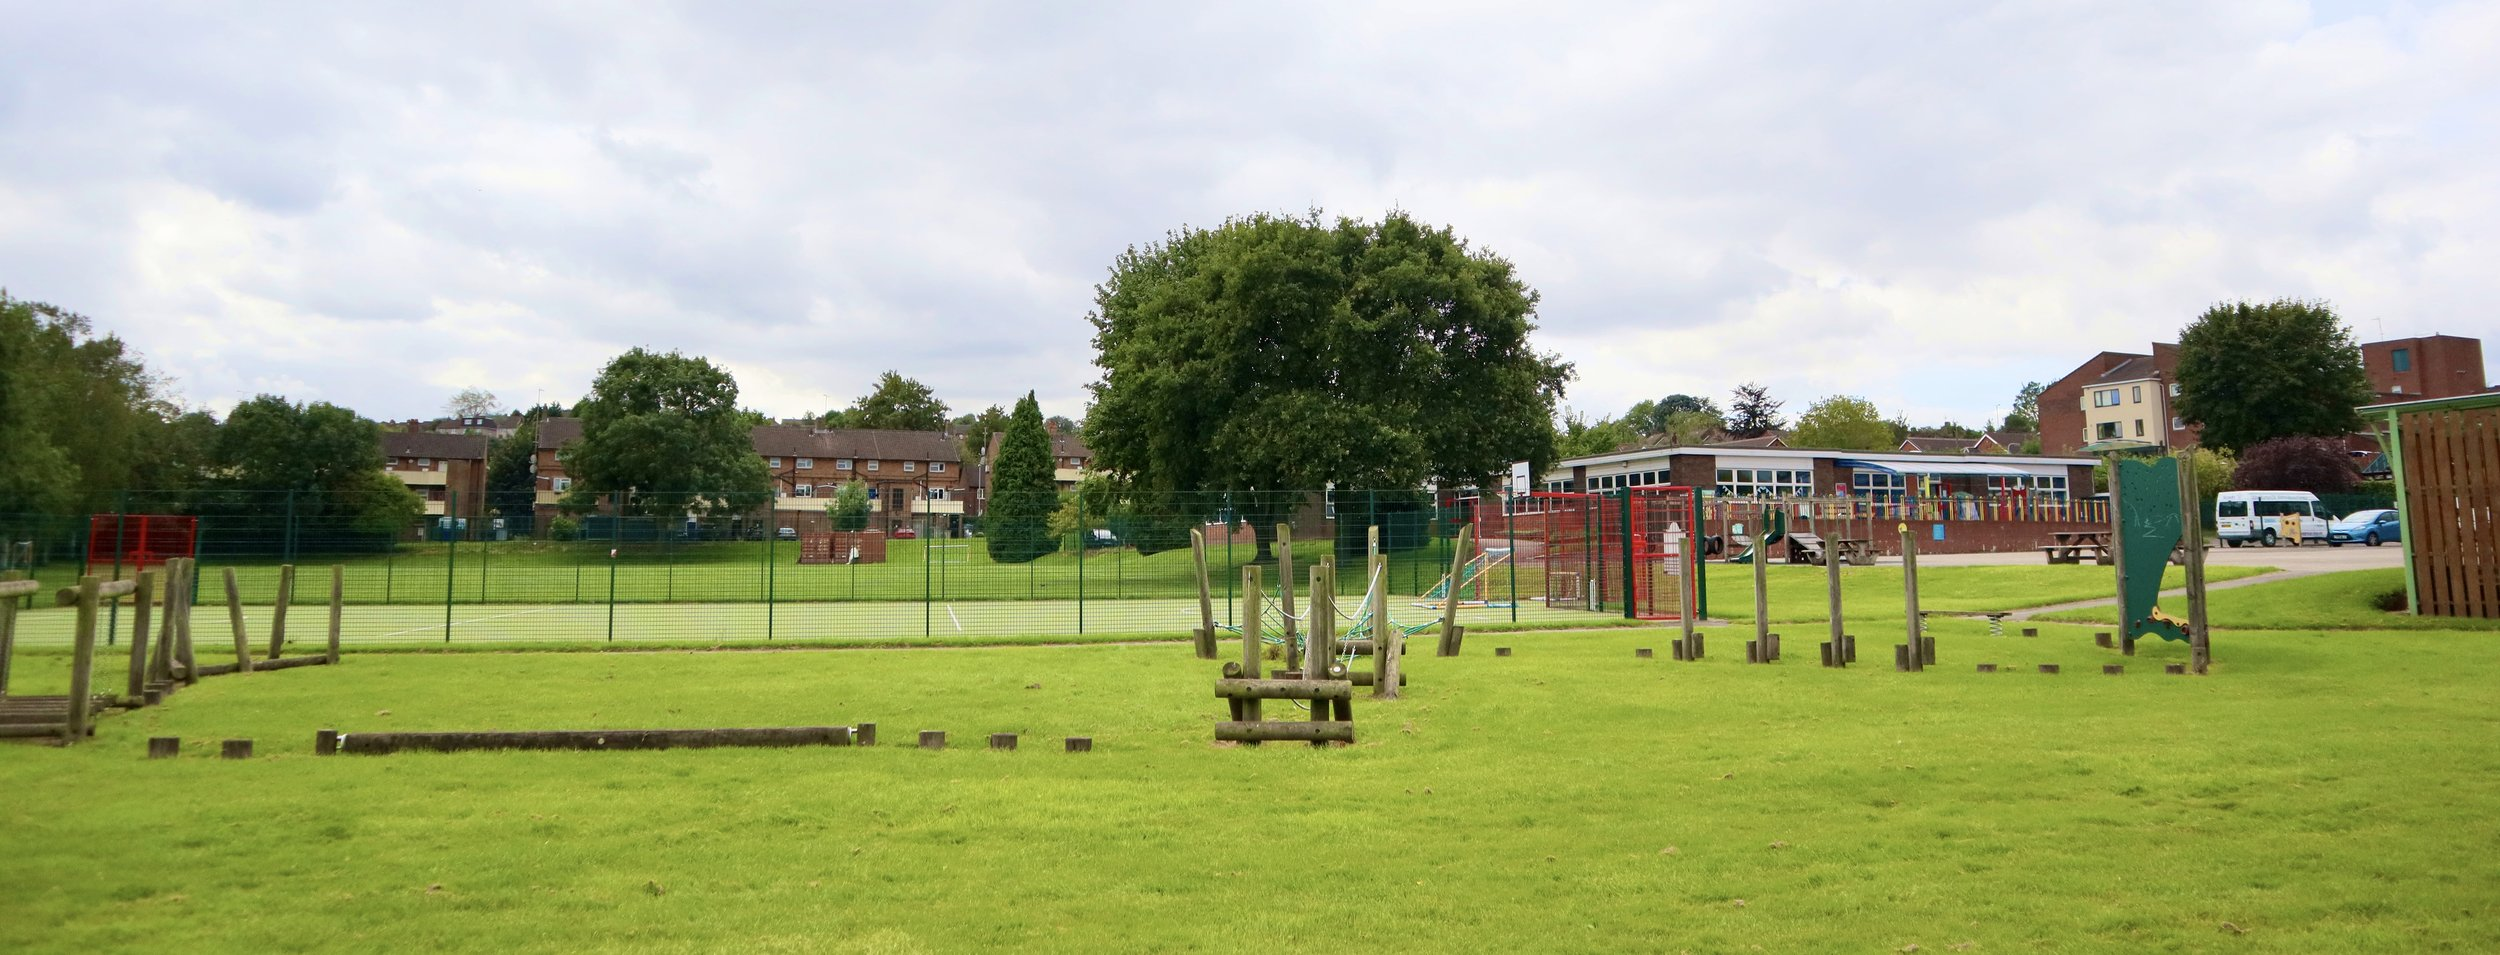 Our school grounds